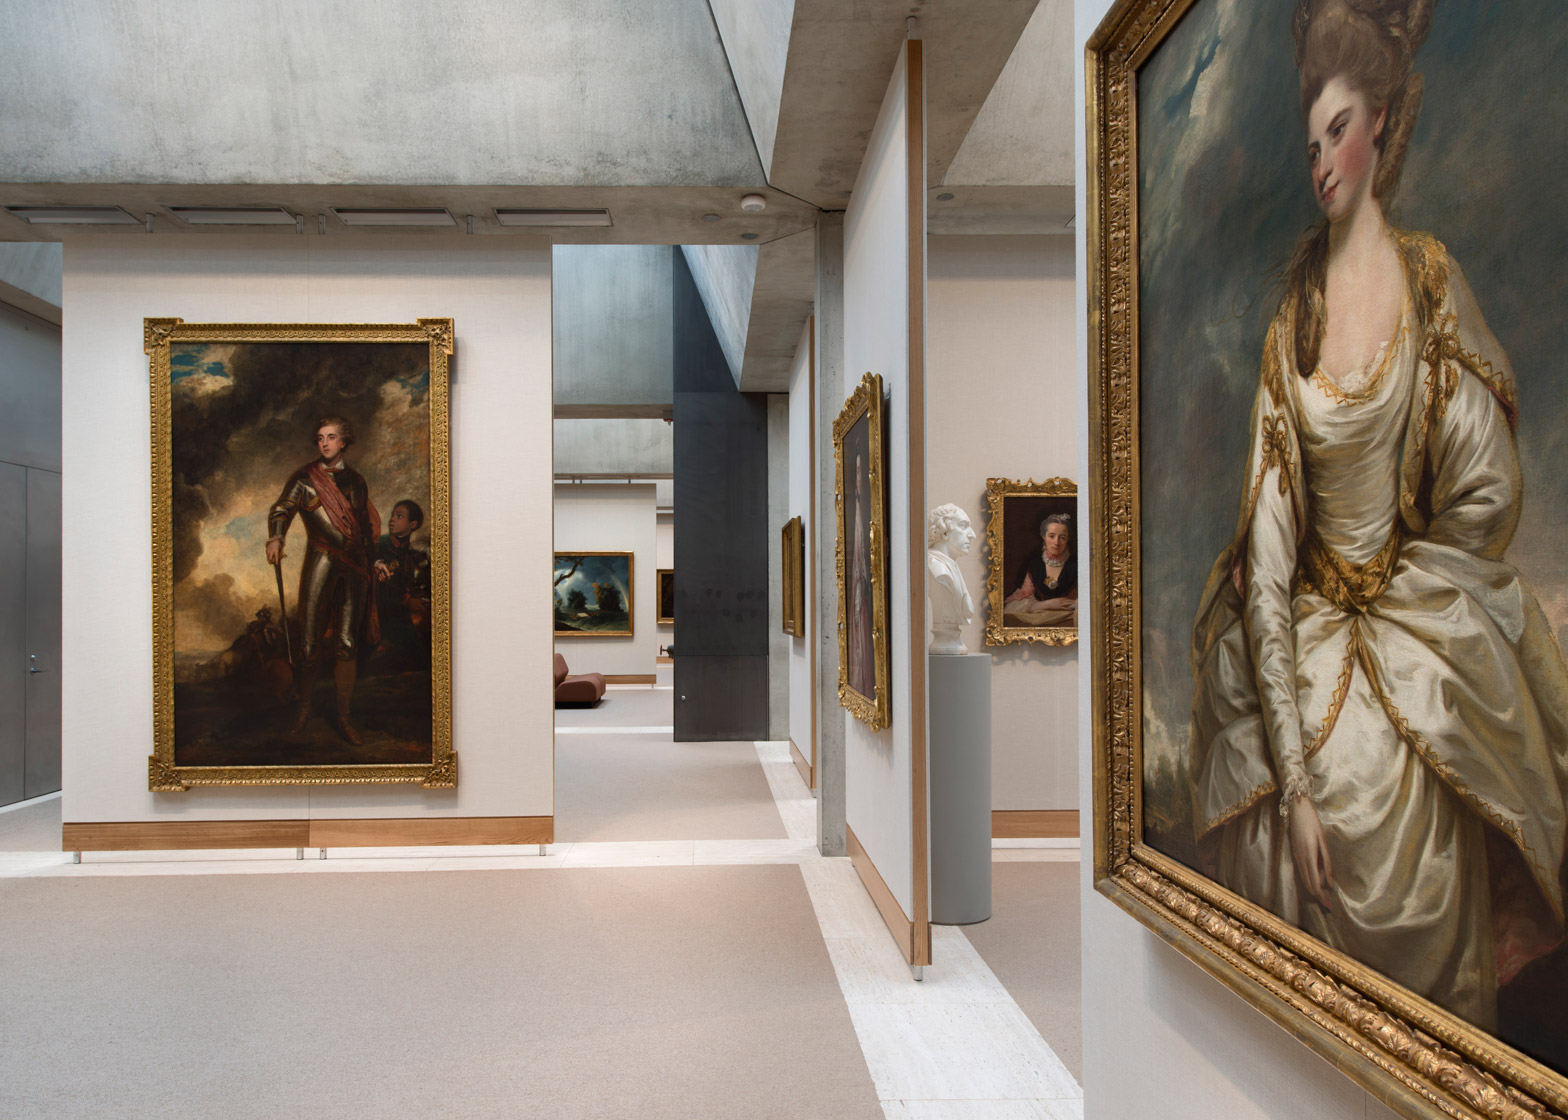 Yale center of British art by Louis Khan reopens following renovation by knight Architecture